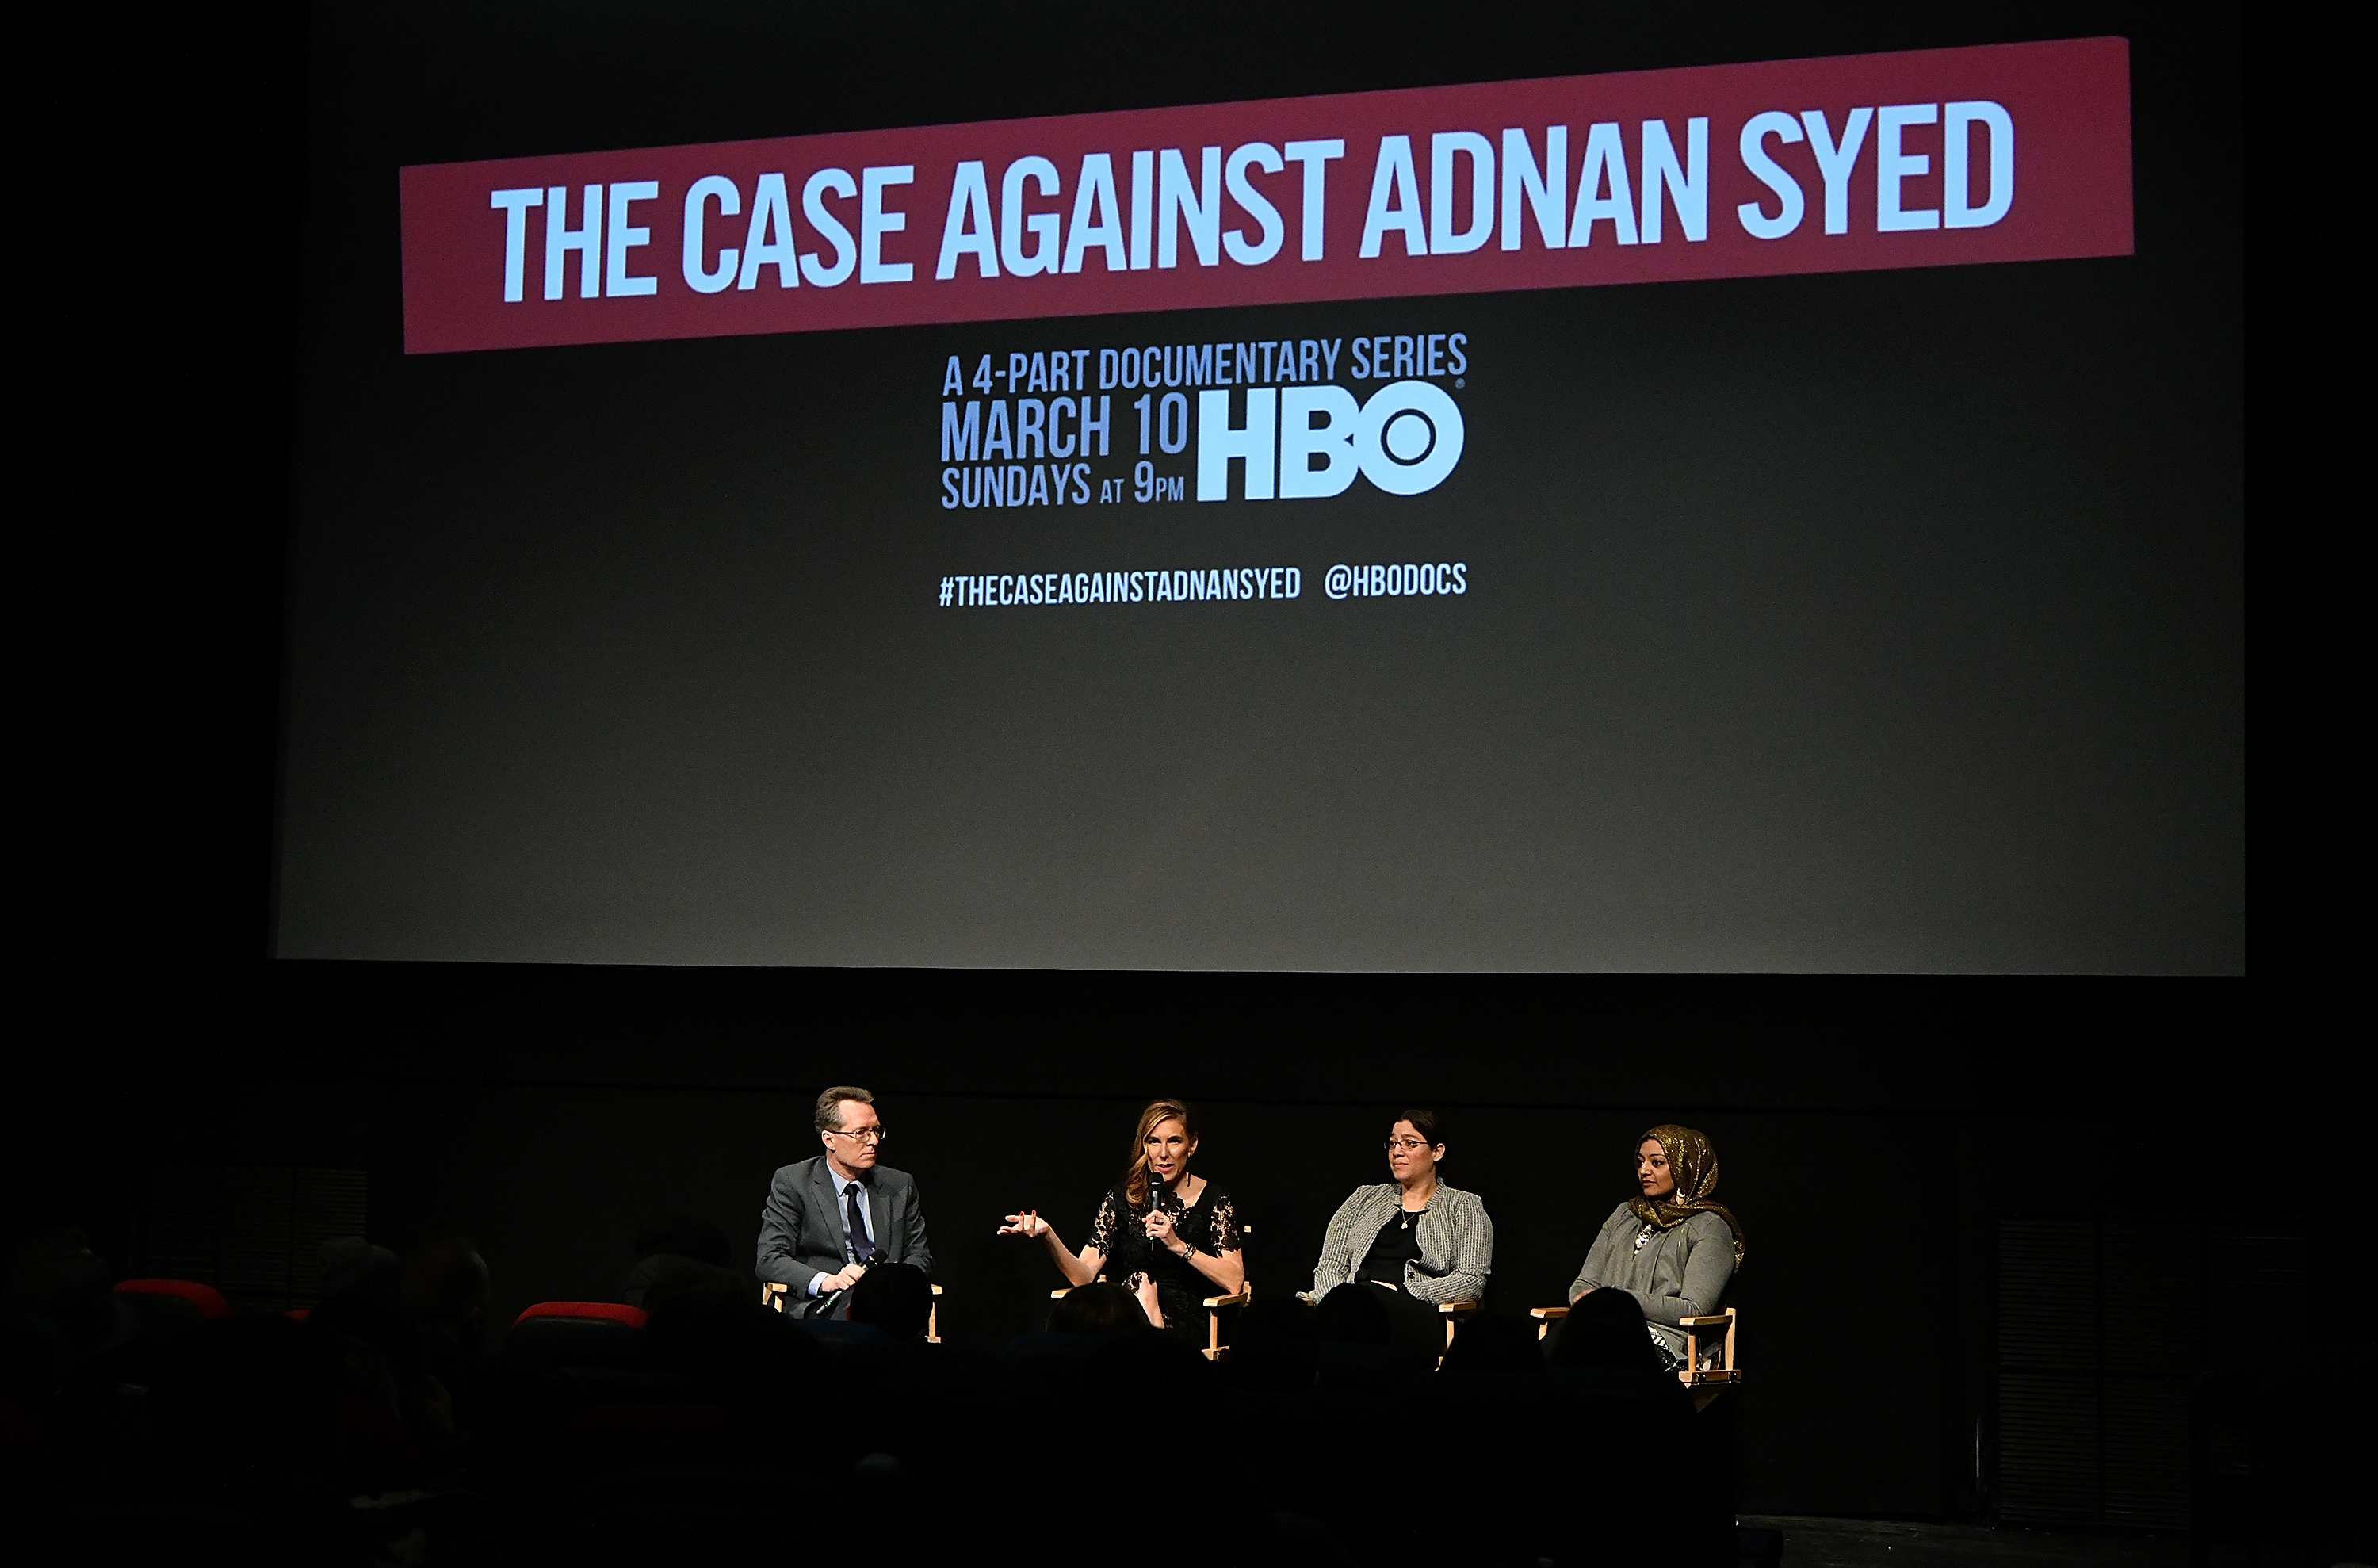 """The New York premiere of HBO's """"The Case Against Adnan Syed"""" on February 26, 2019. (Slaven Vlasic/Getty Images for HBO)"""